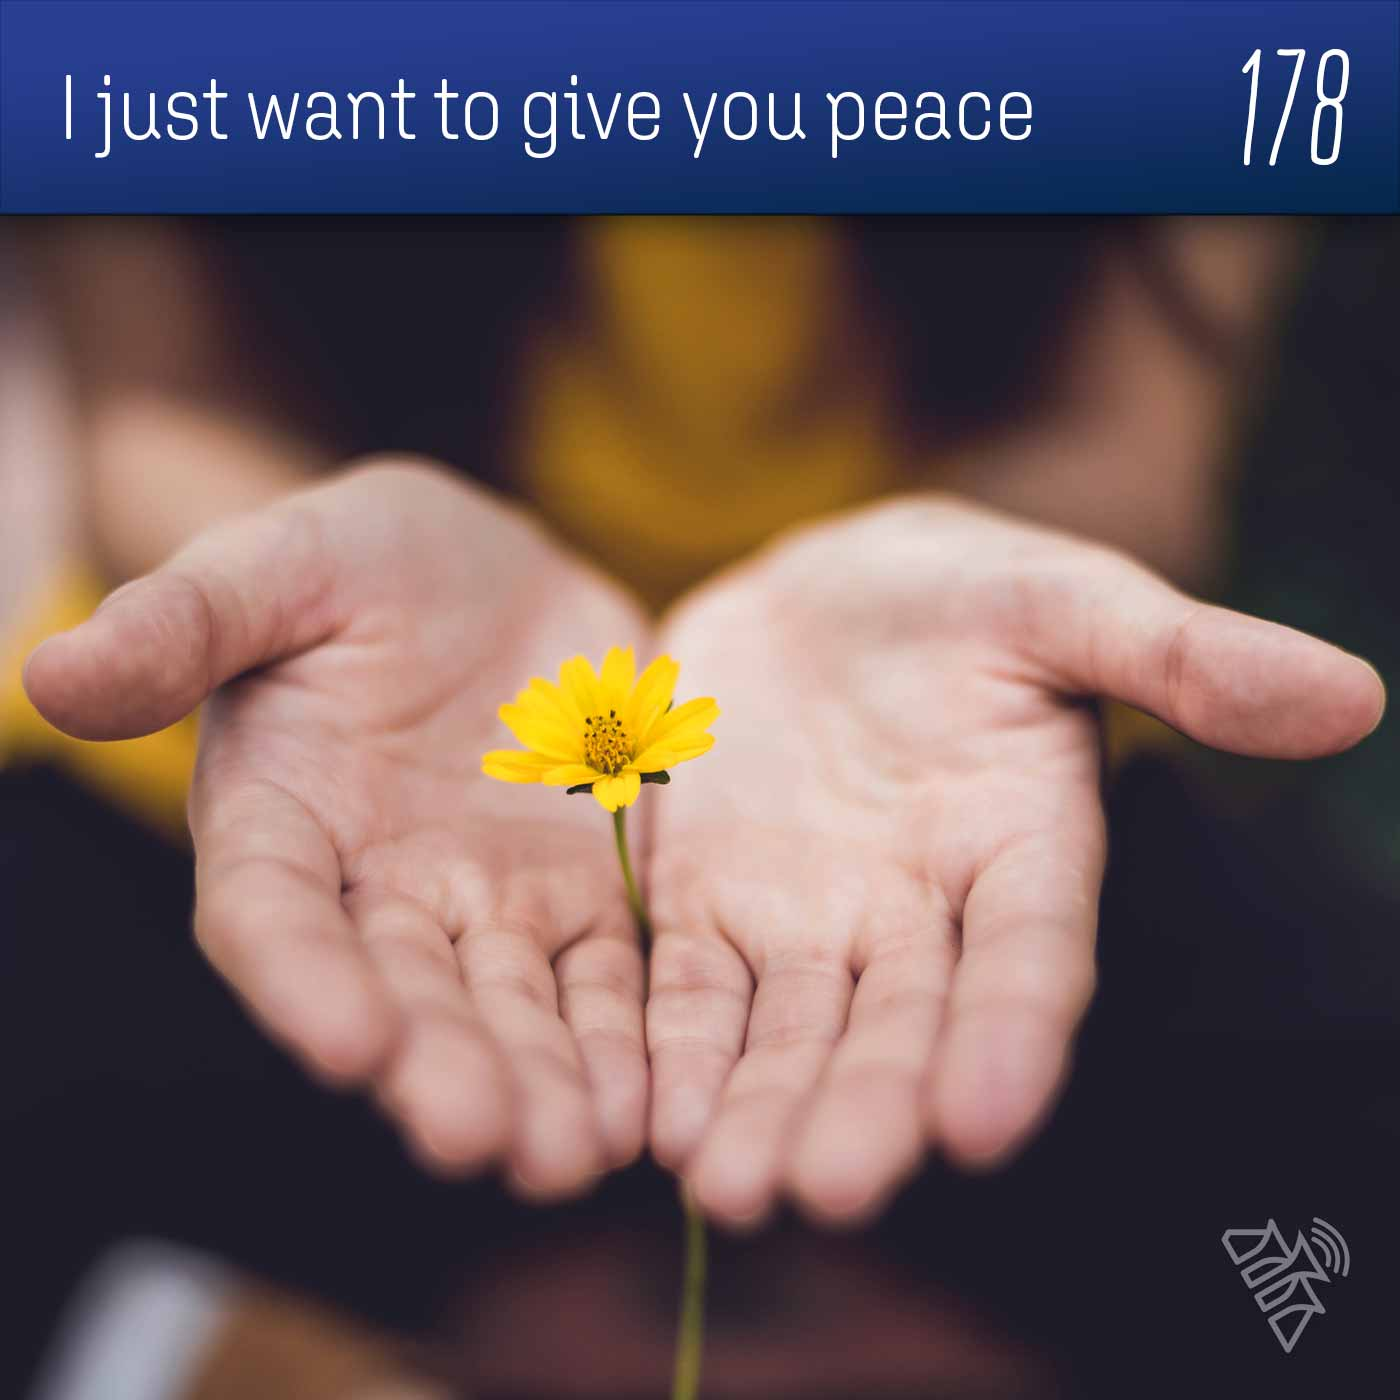 I just want to give you peace